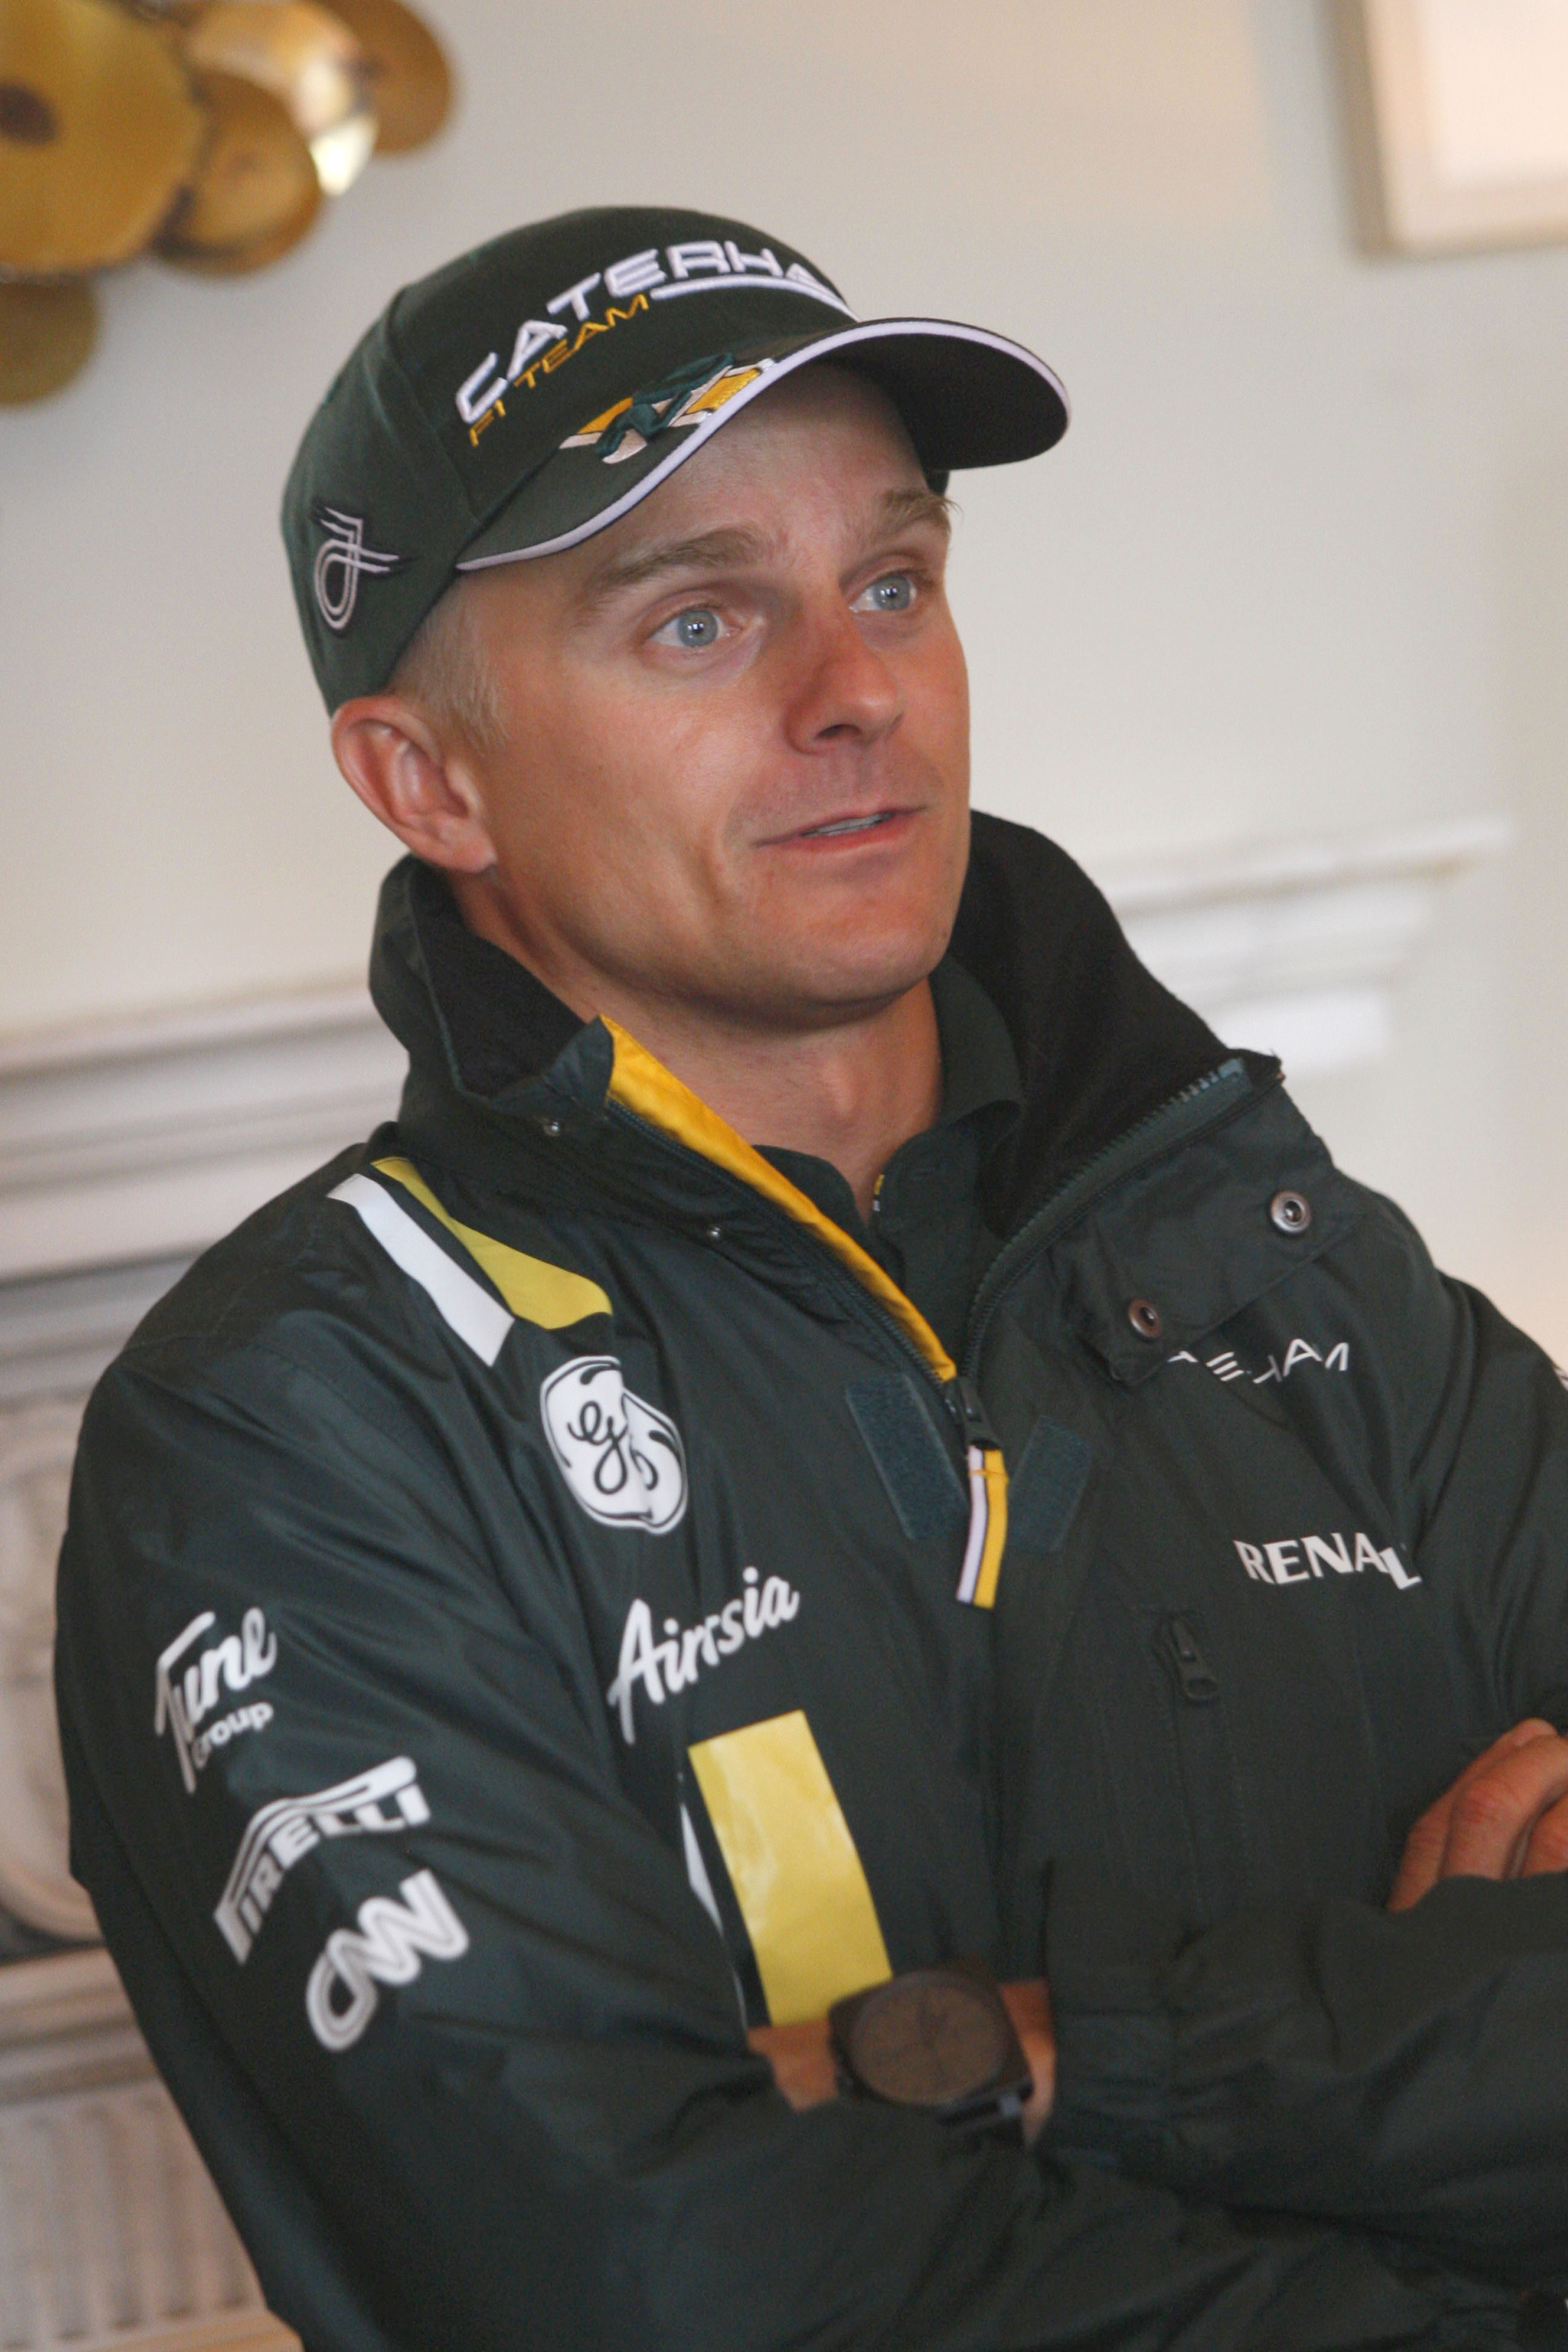 The 36-year old son of father (?) and mother(?) Heikki Kovalainen in 2018 photo. Heikki Kovalainen earned a  million dollar salary - leaving the net worth at 6.3 million in 2018